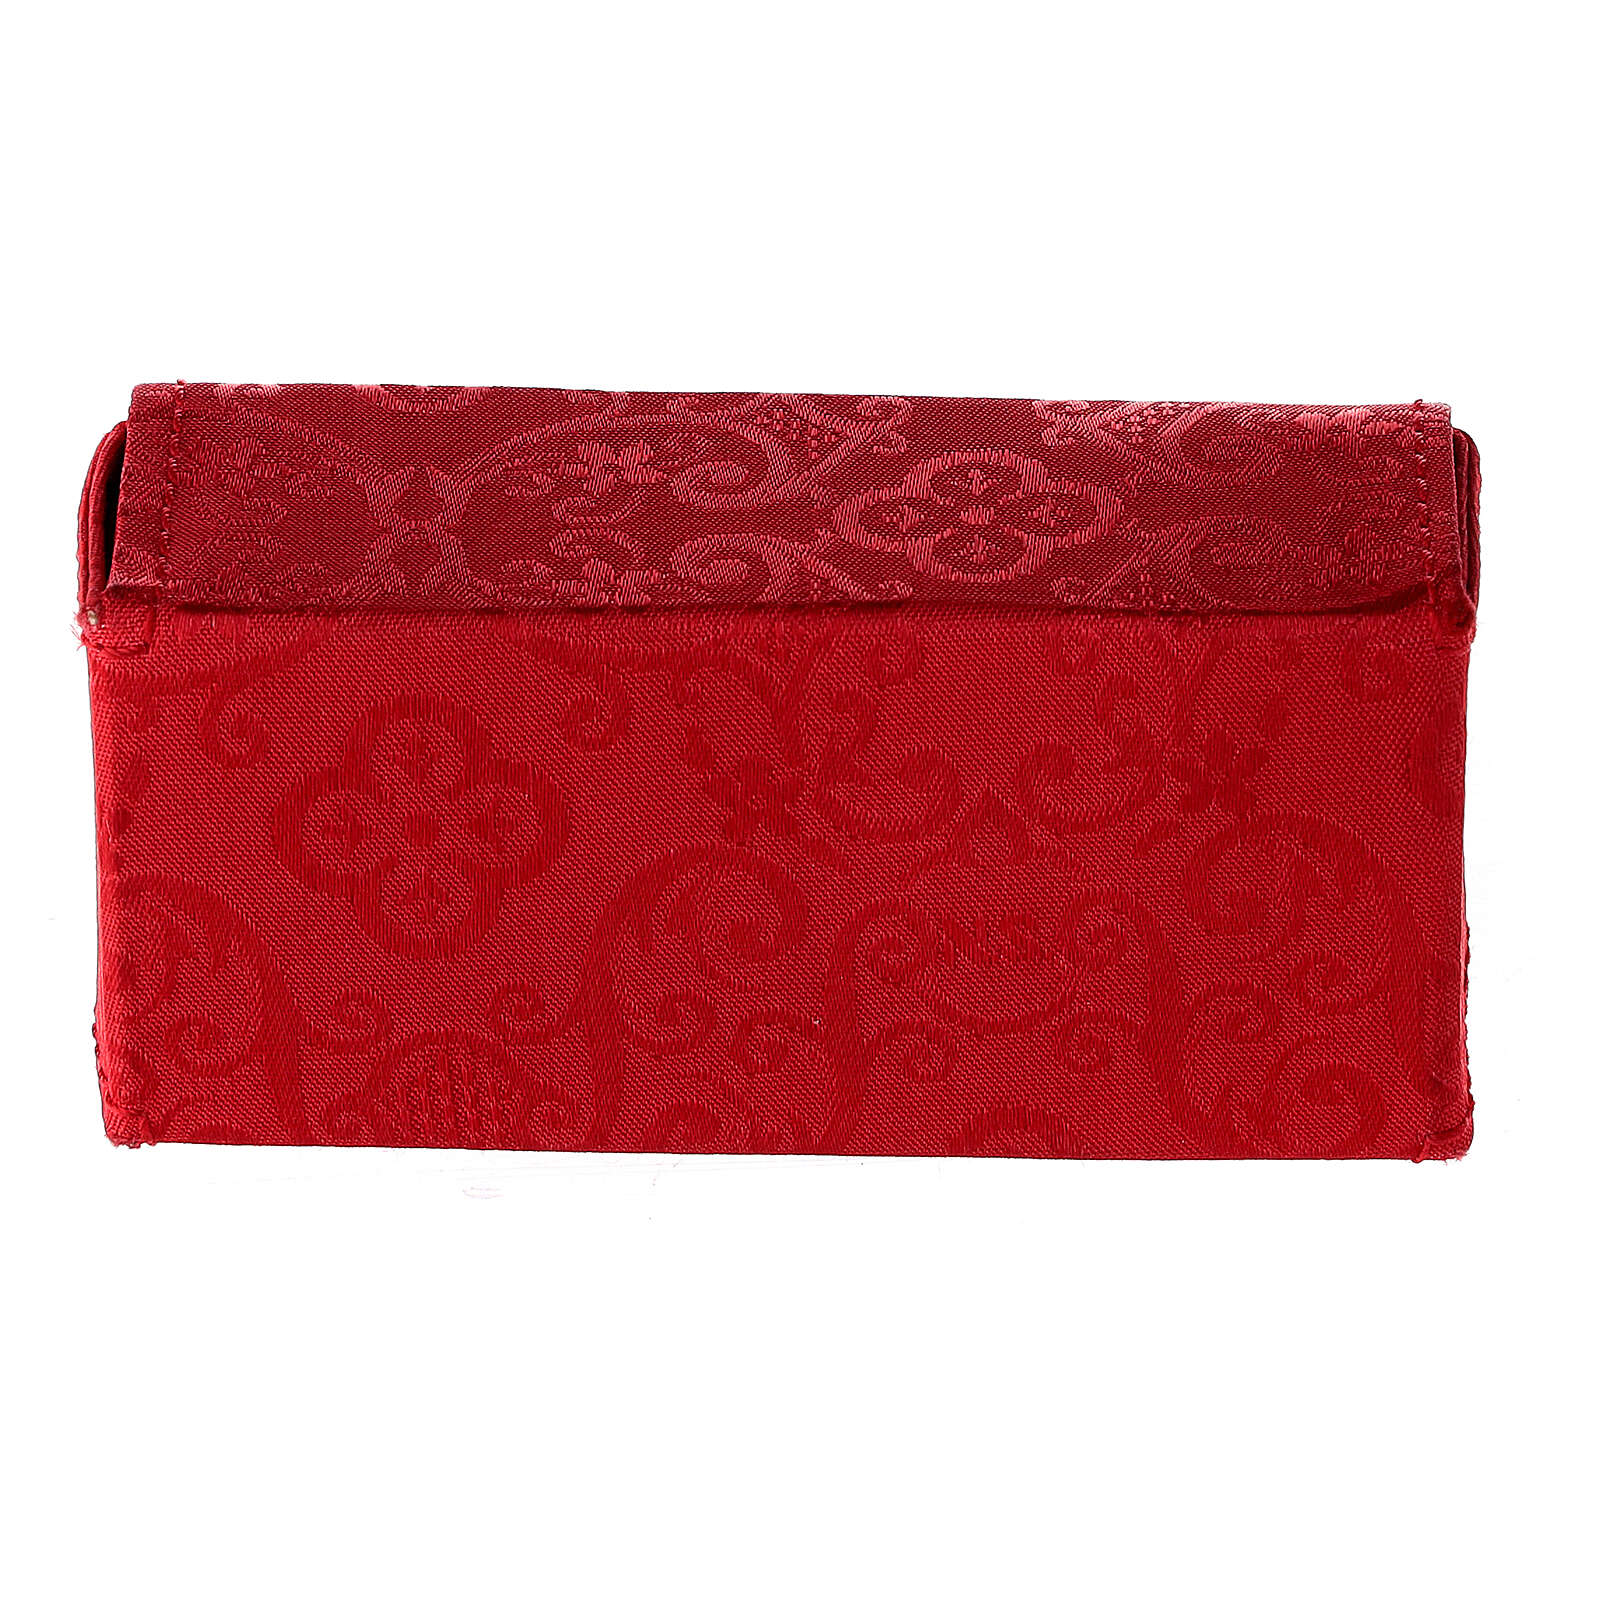 Case in red Jacquard fabric with three stocks of 15 ml 3